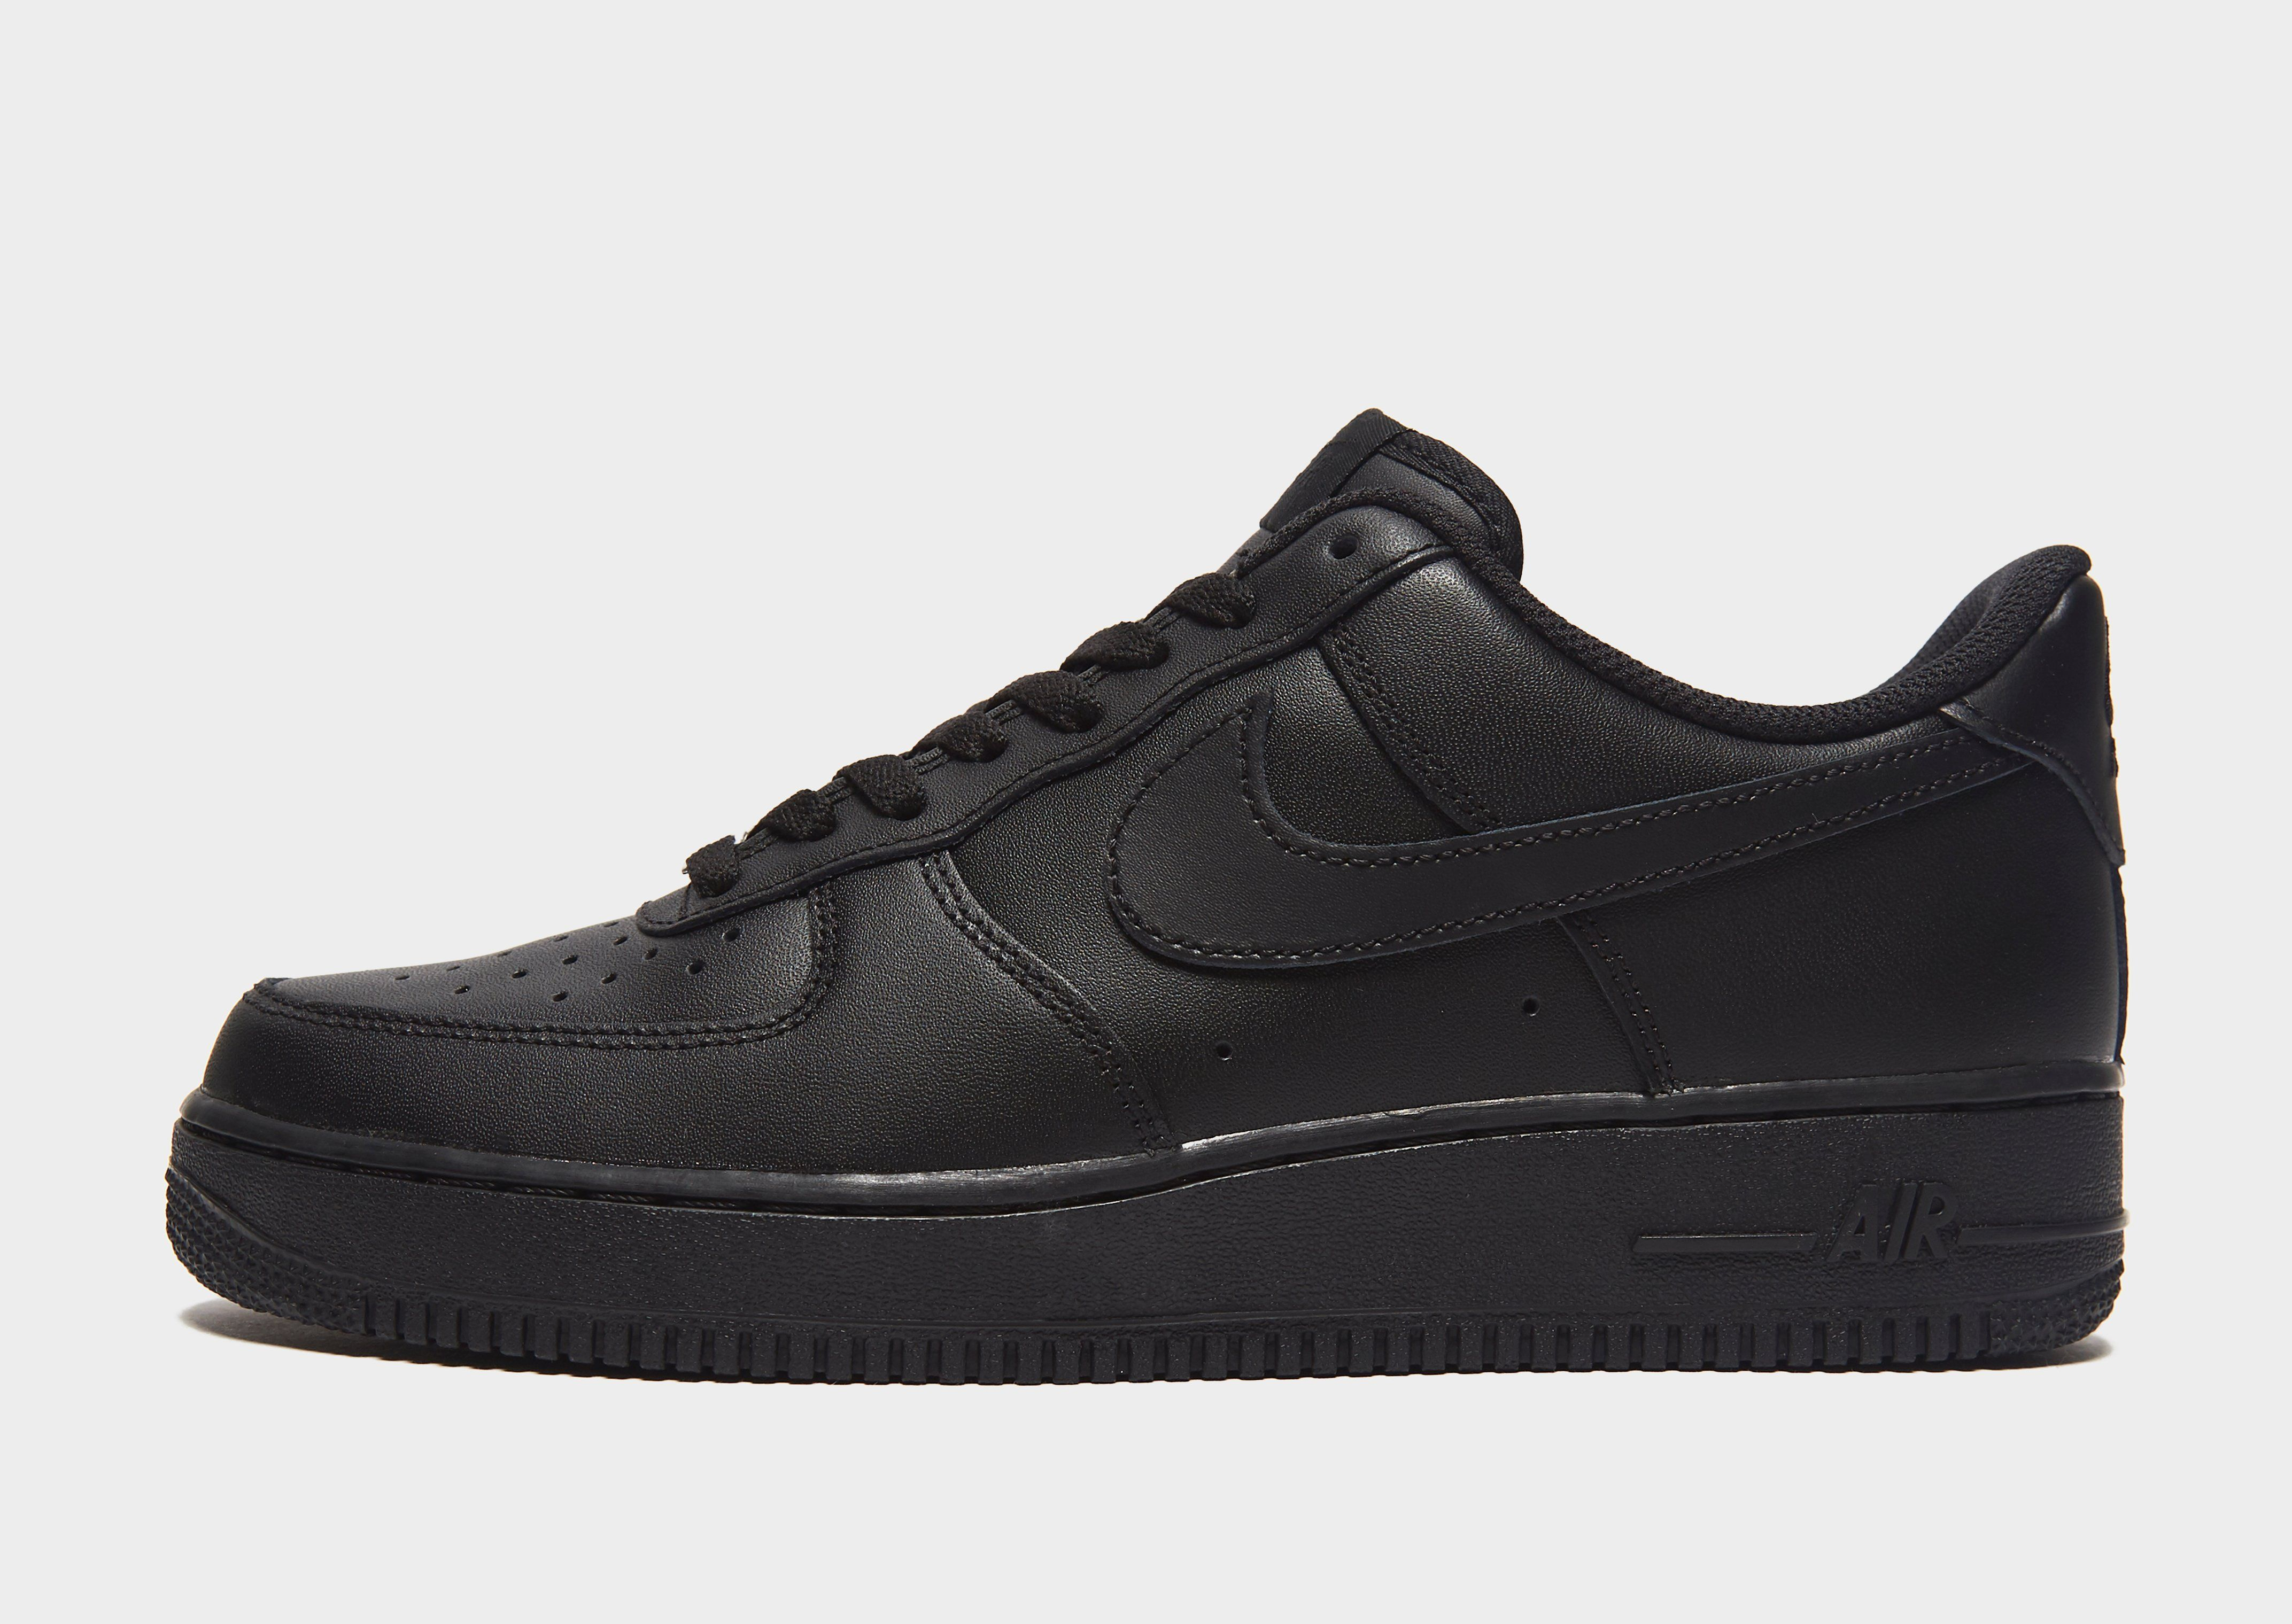 Nike Air Force 1 Low Jd Sports